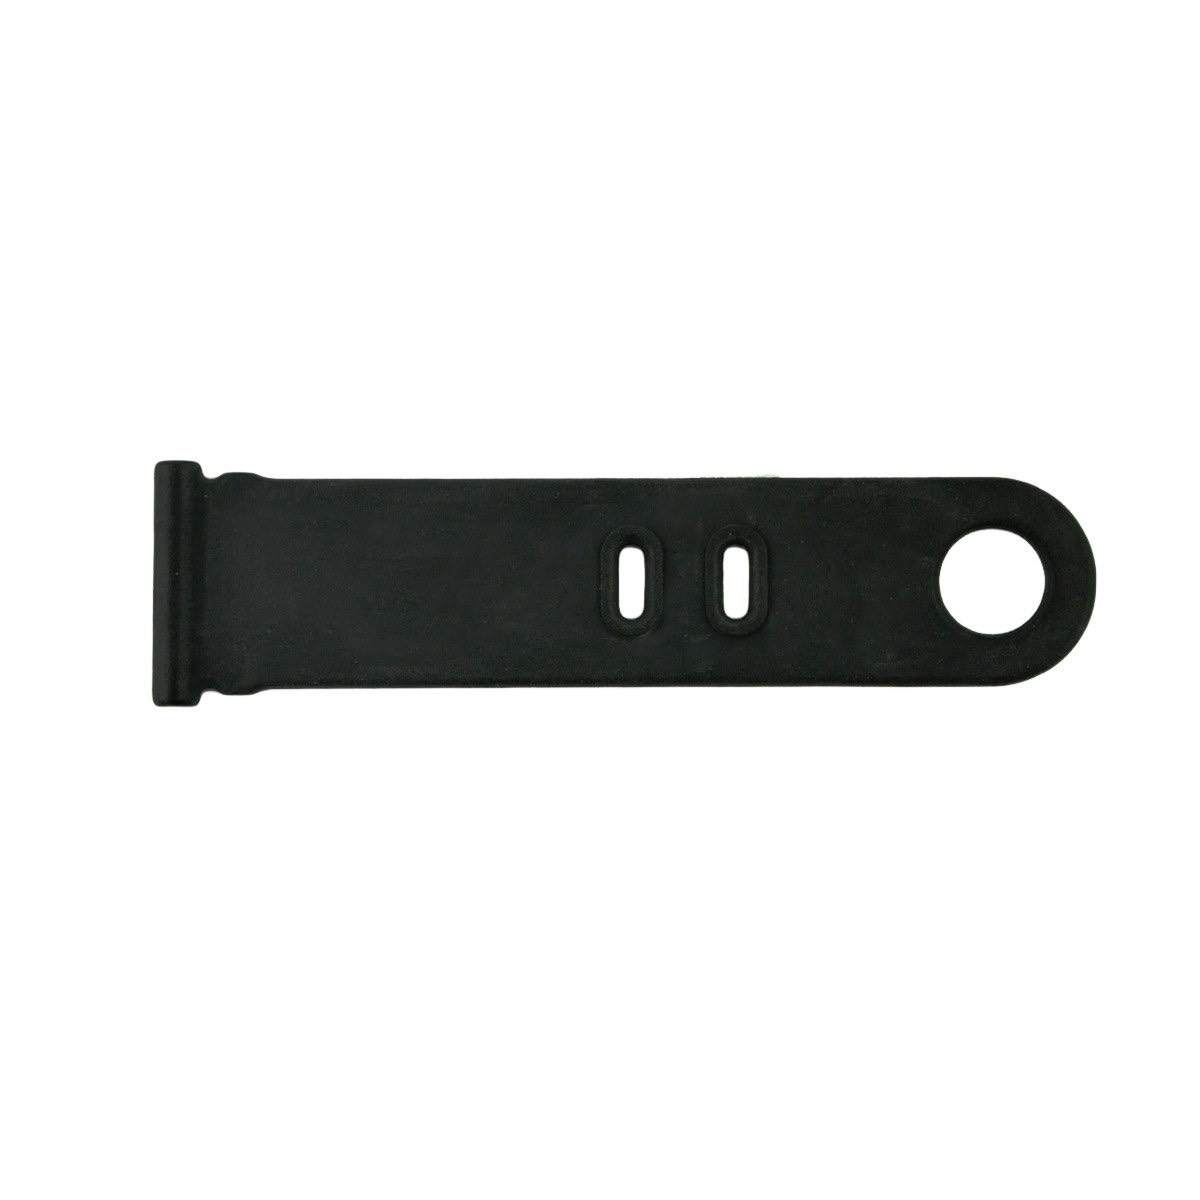 8005-0090, Flexible Strap for GPZ 7000